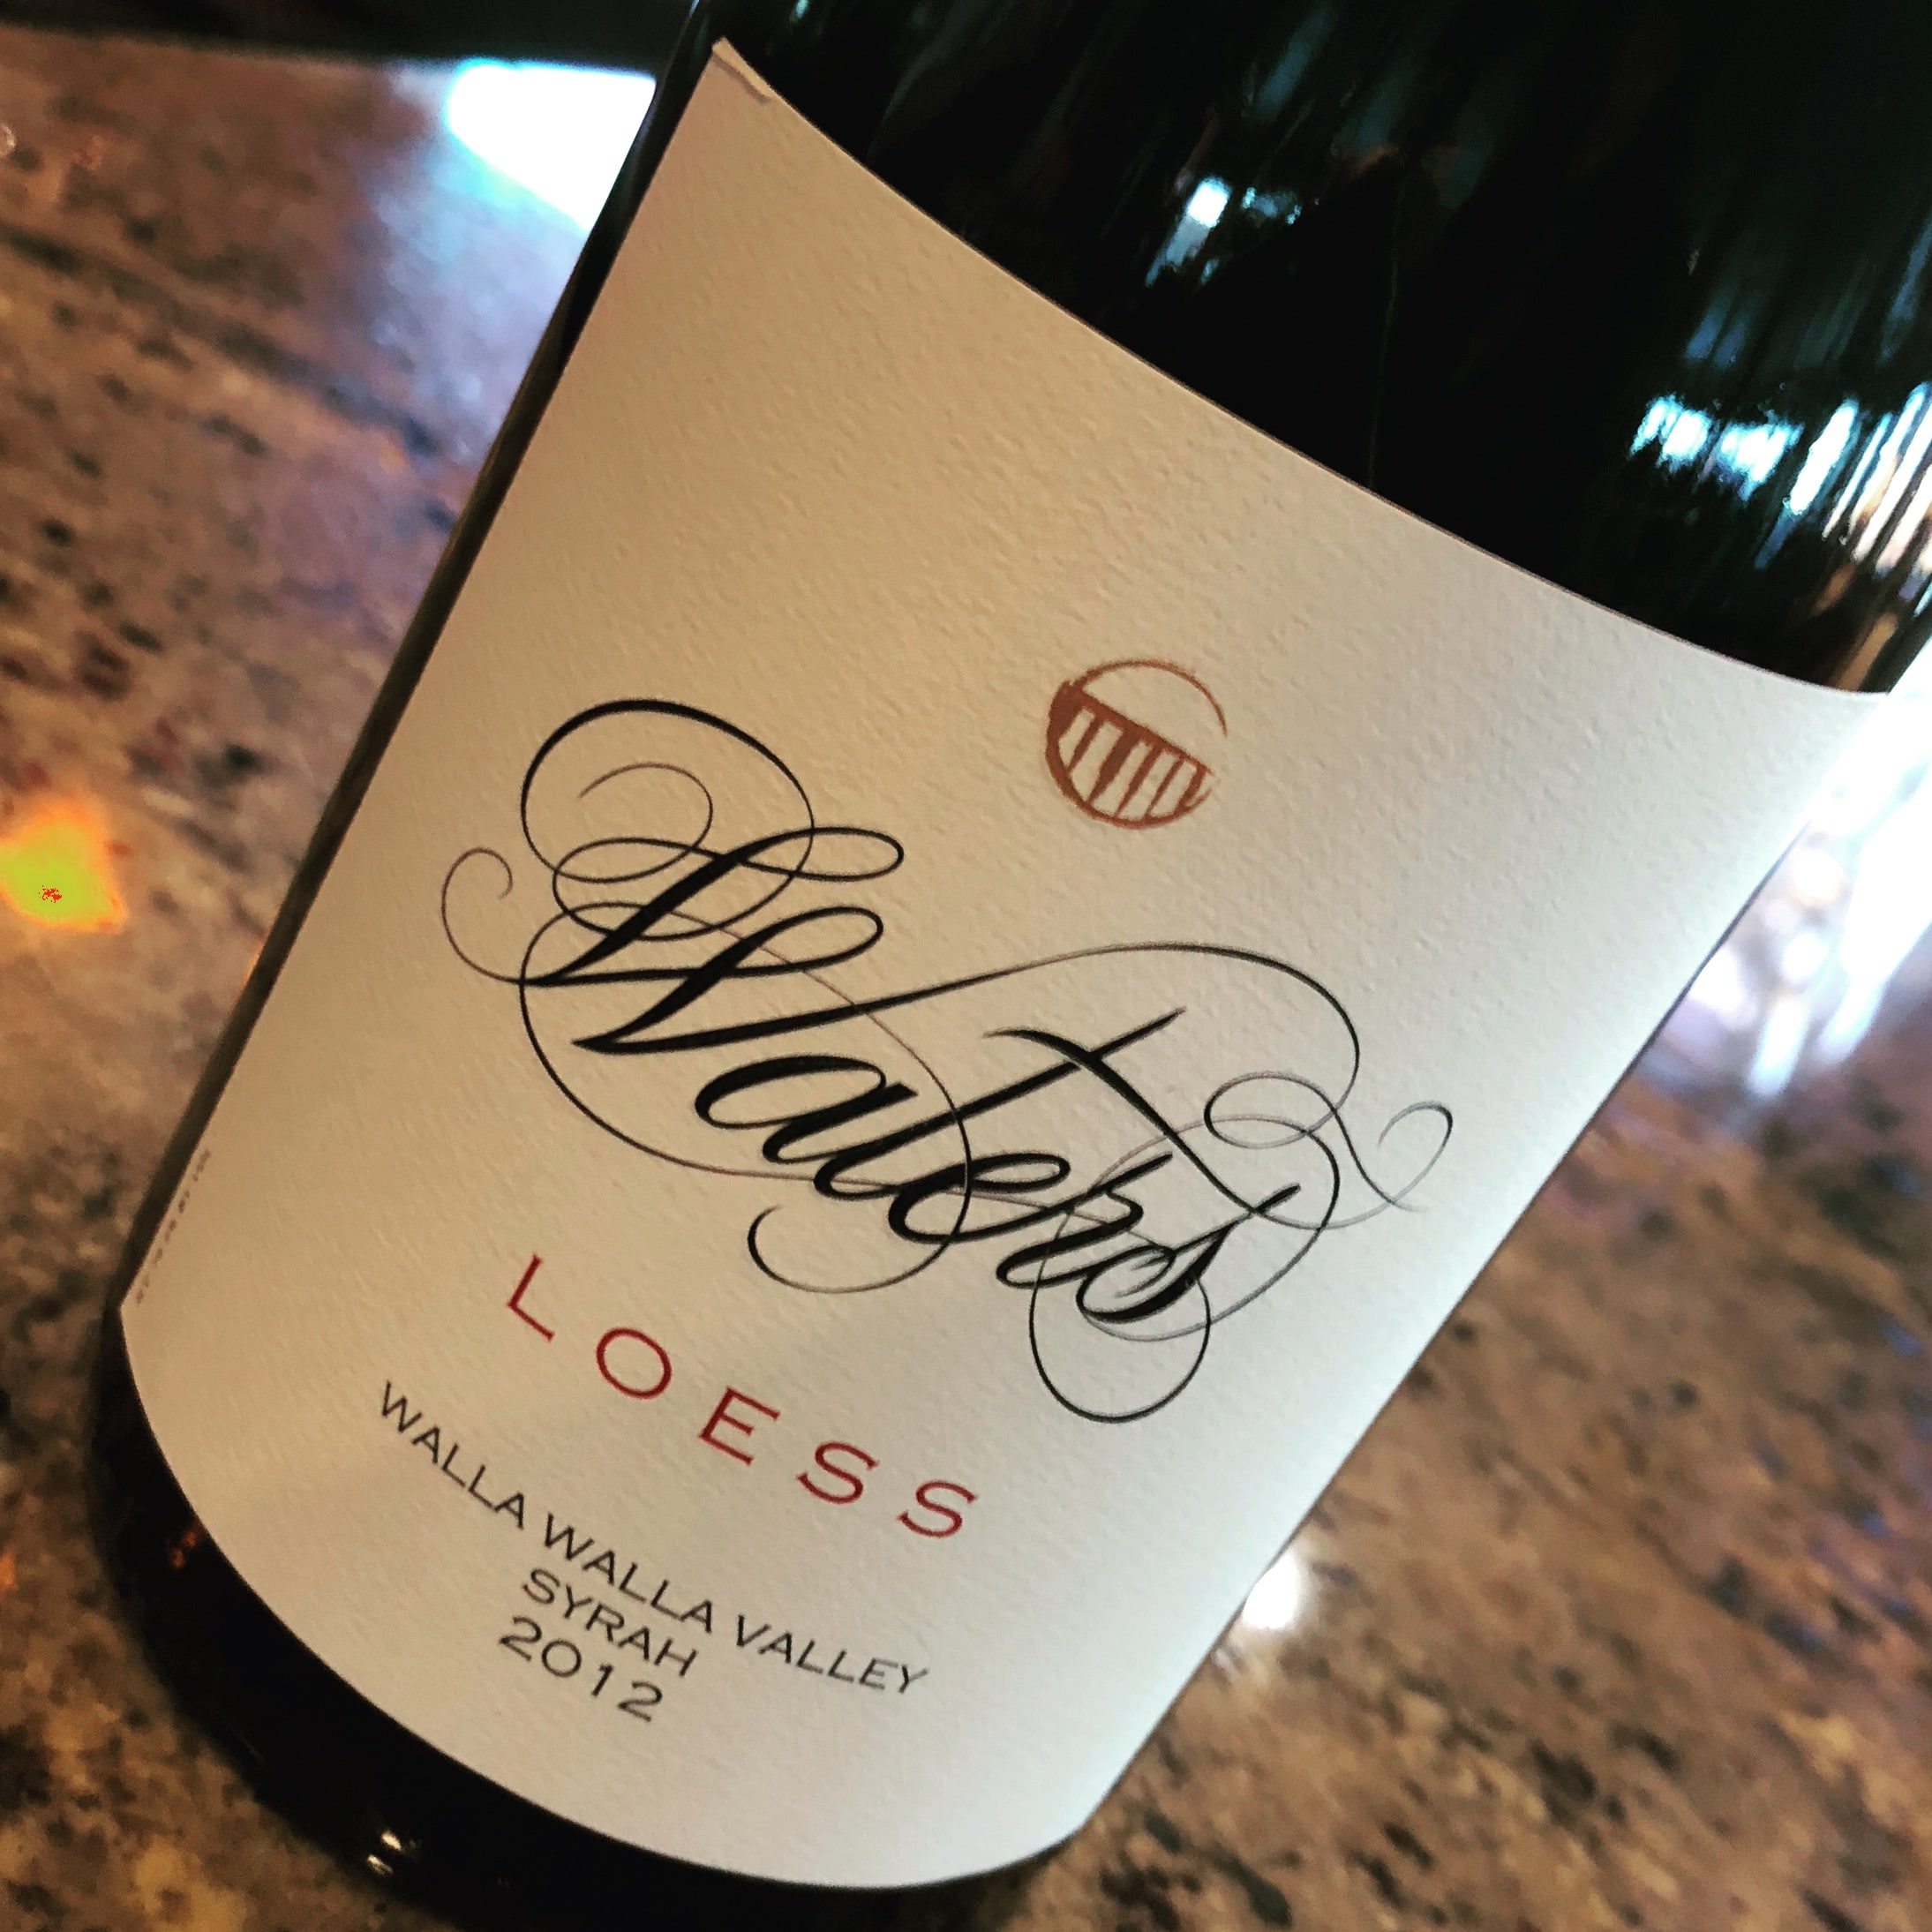 Waters Loess Vineyard Syrah 2012